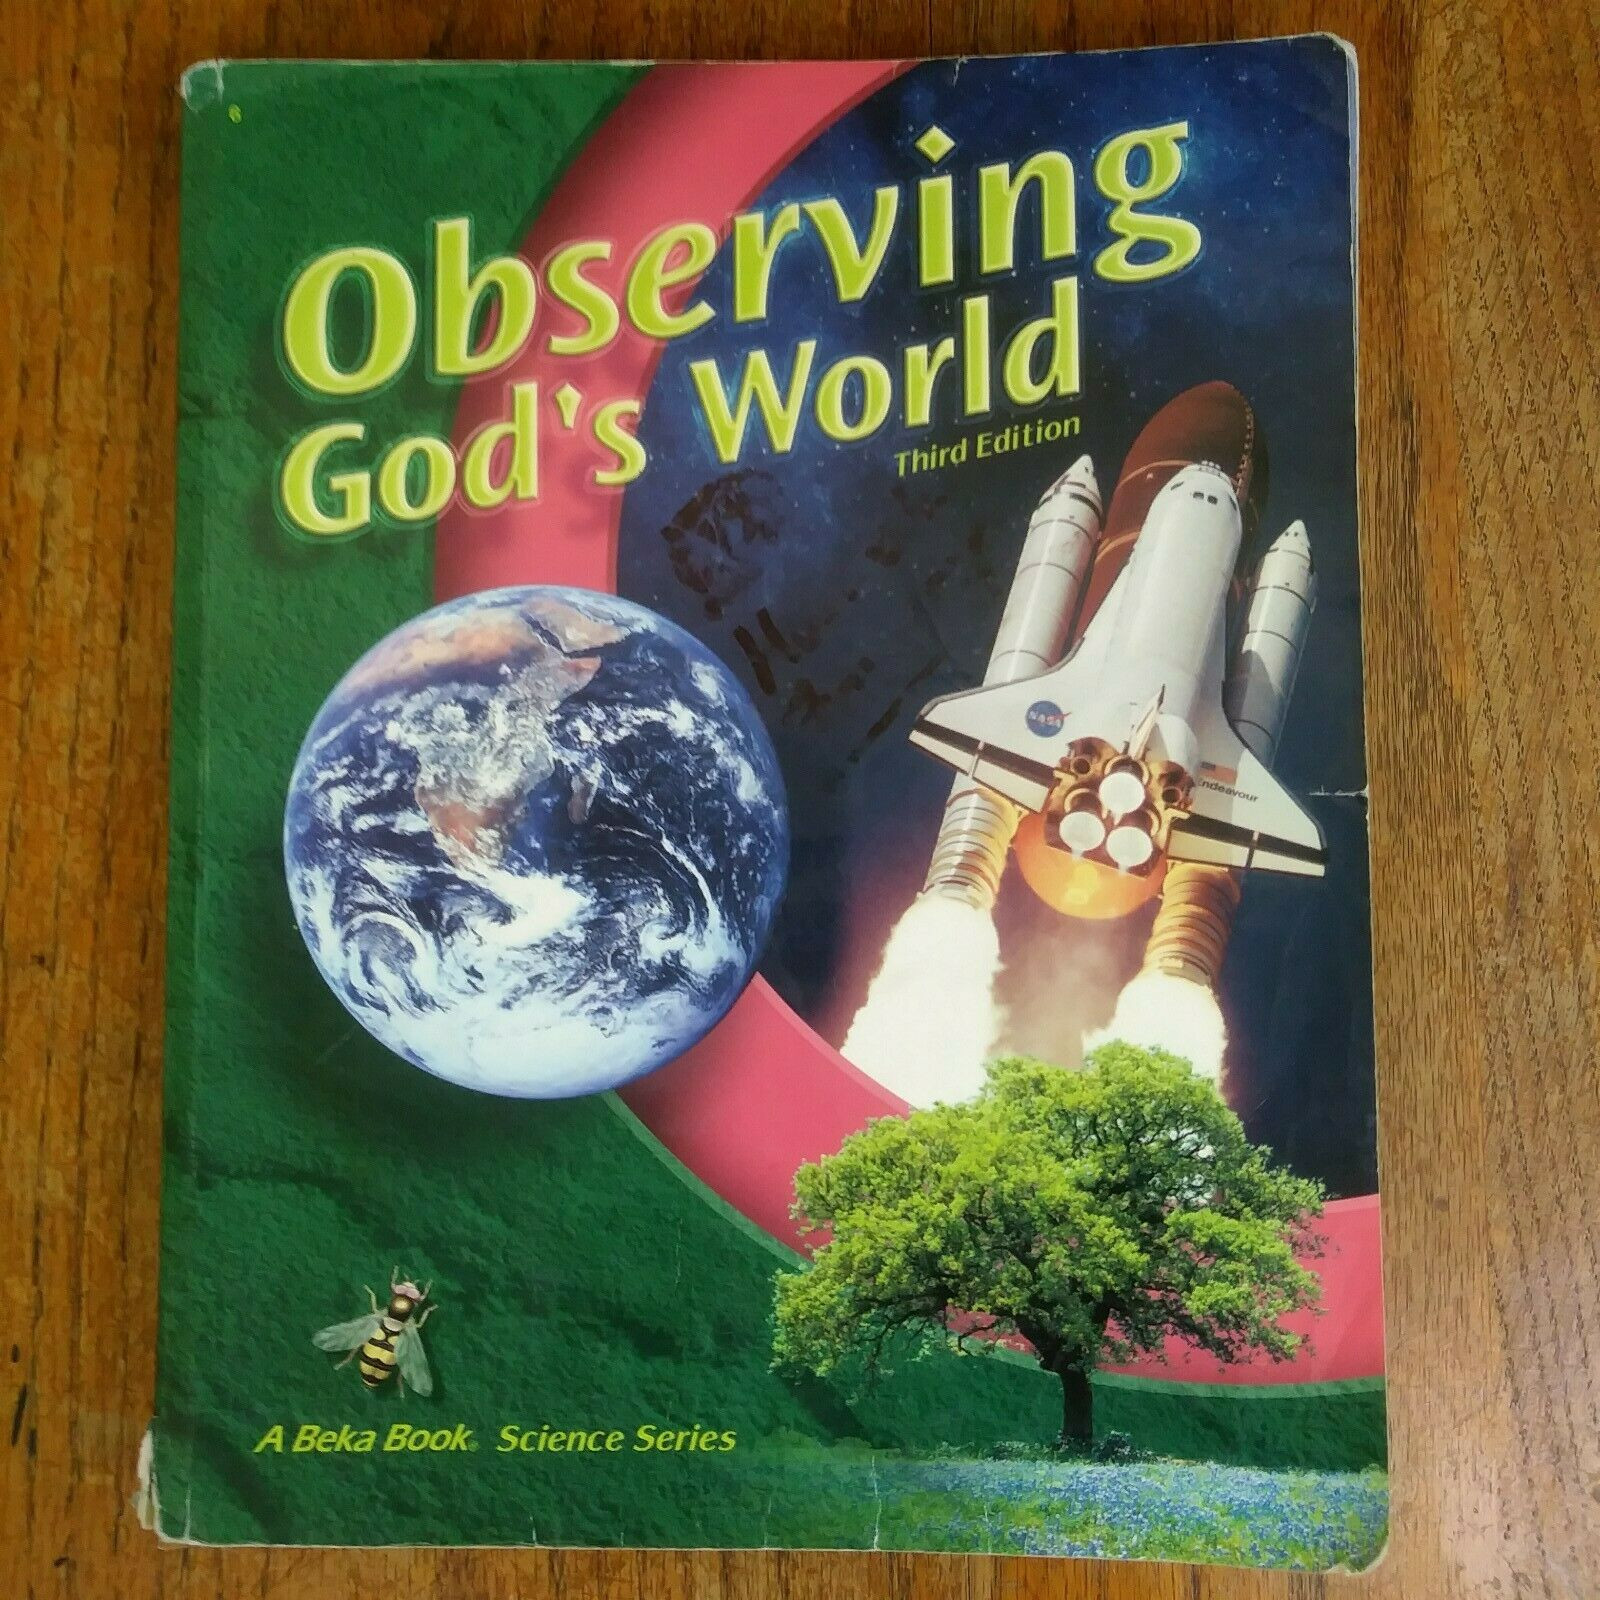 Abeka 6th Grade Science Abeka Observing God's World Science Student Text Book Current Edition 6th Grade